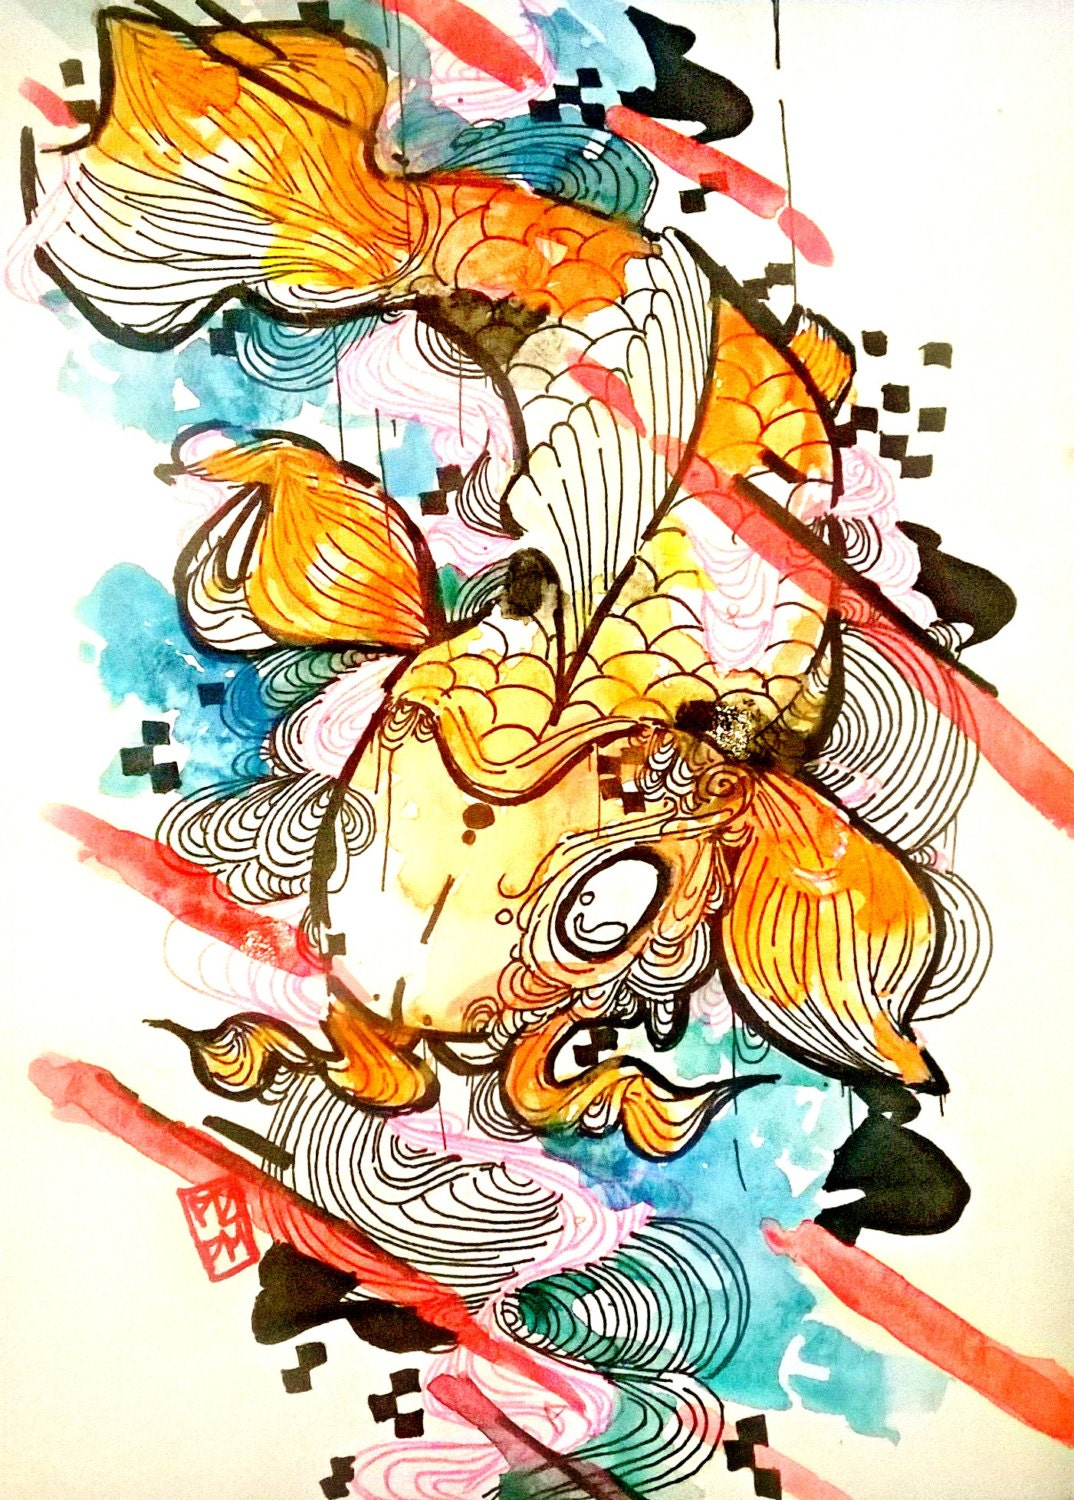 Koi fish art japanese koi fish art print by artofprincessm for Koi fish paintings prints